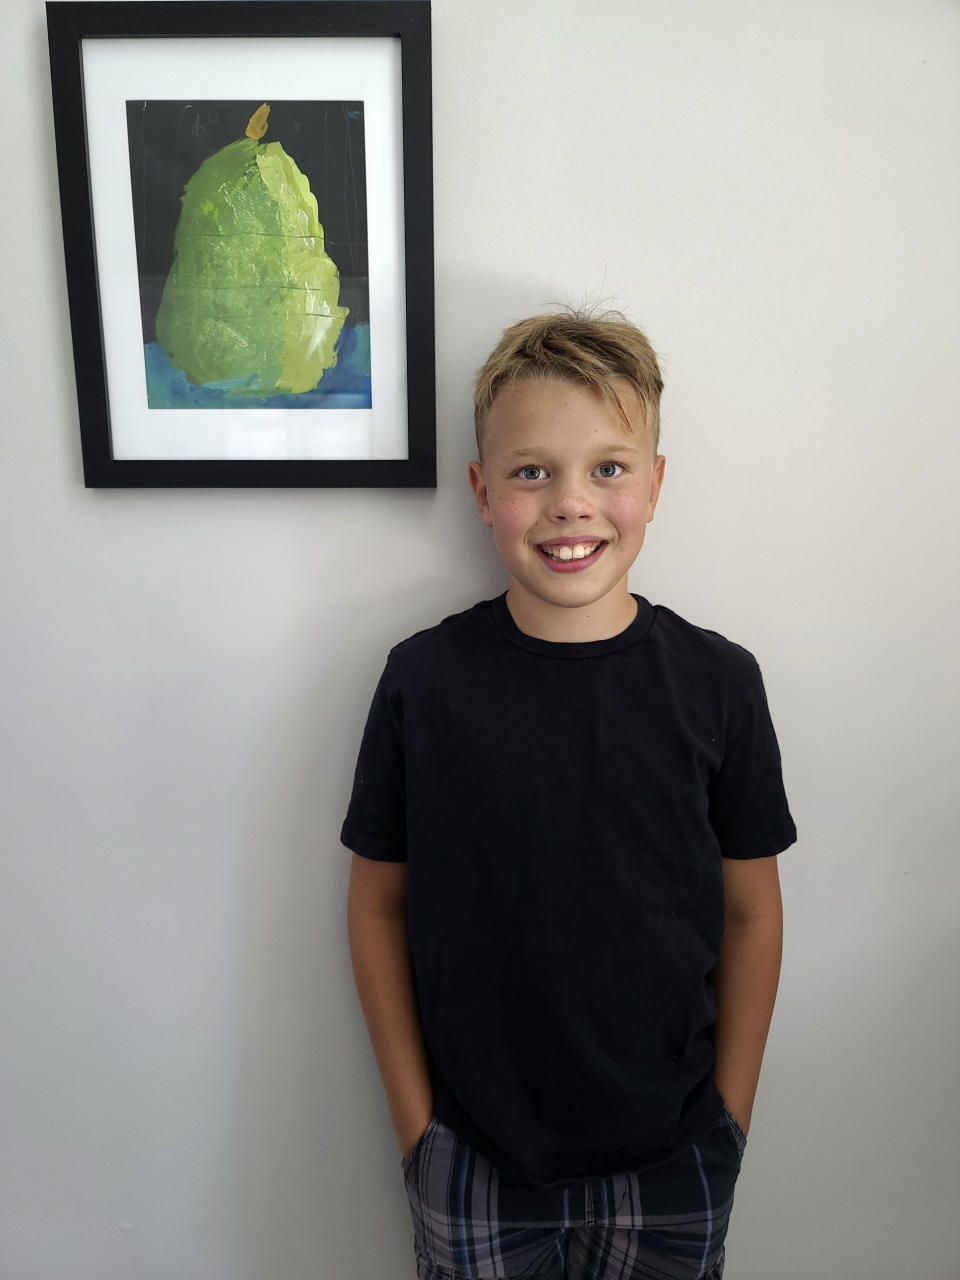 This image released by Elle Anderson shows a portrait of her son Aiden Anderson, 11, in Orlando. Anderson will begin sixth grade at home for two weeks, then happily head out to school in a state that's among the nation's worst hot spots for the virus. (Elle Anderson via AP)